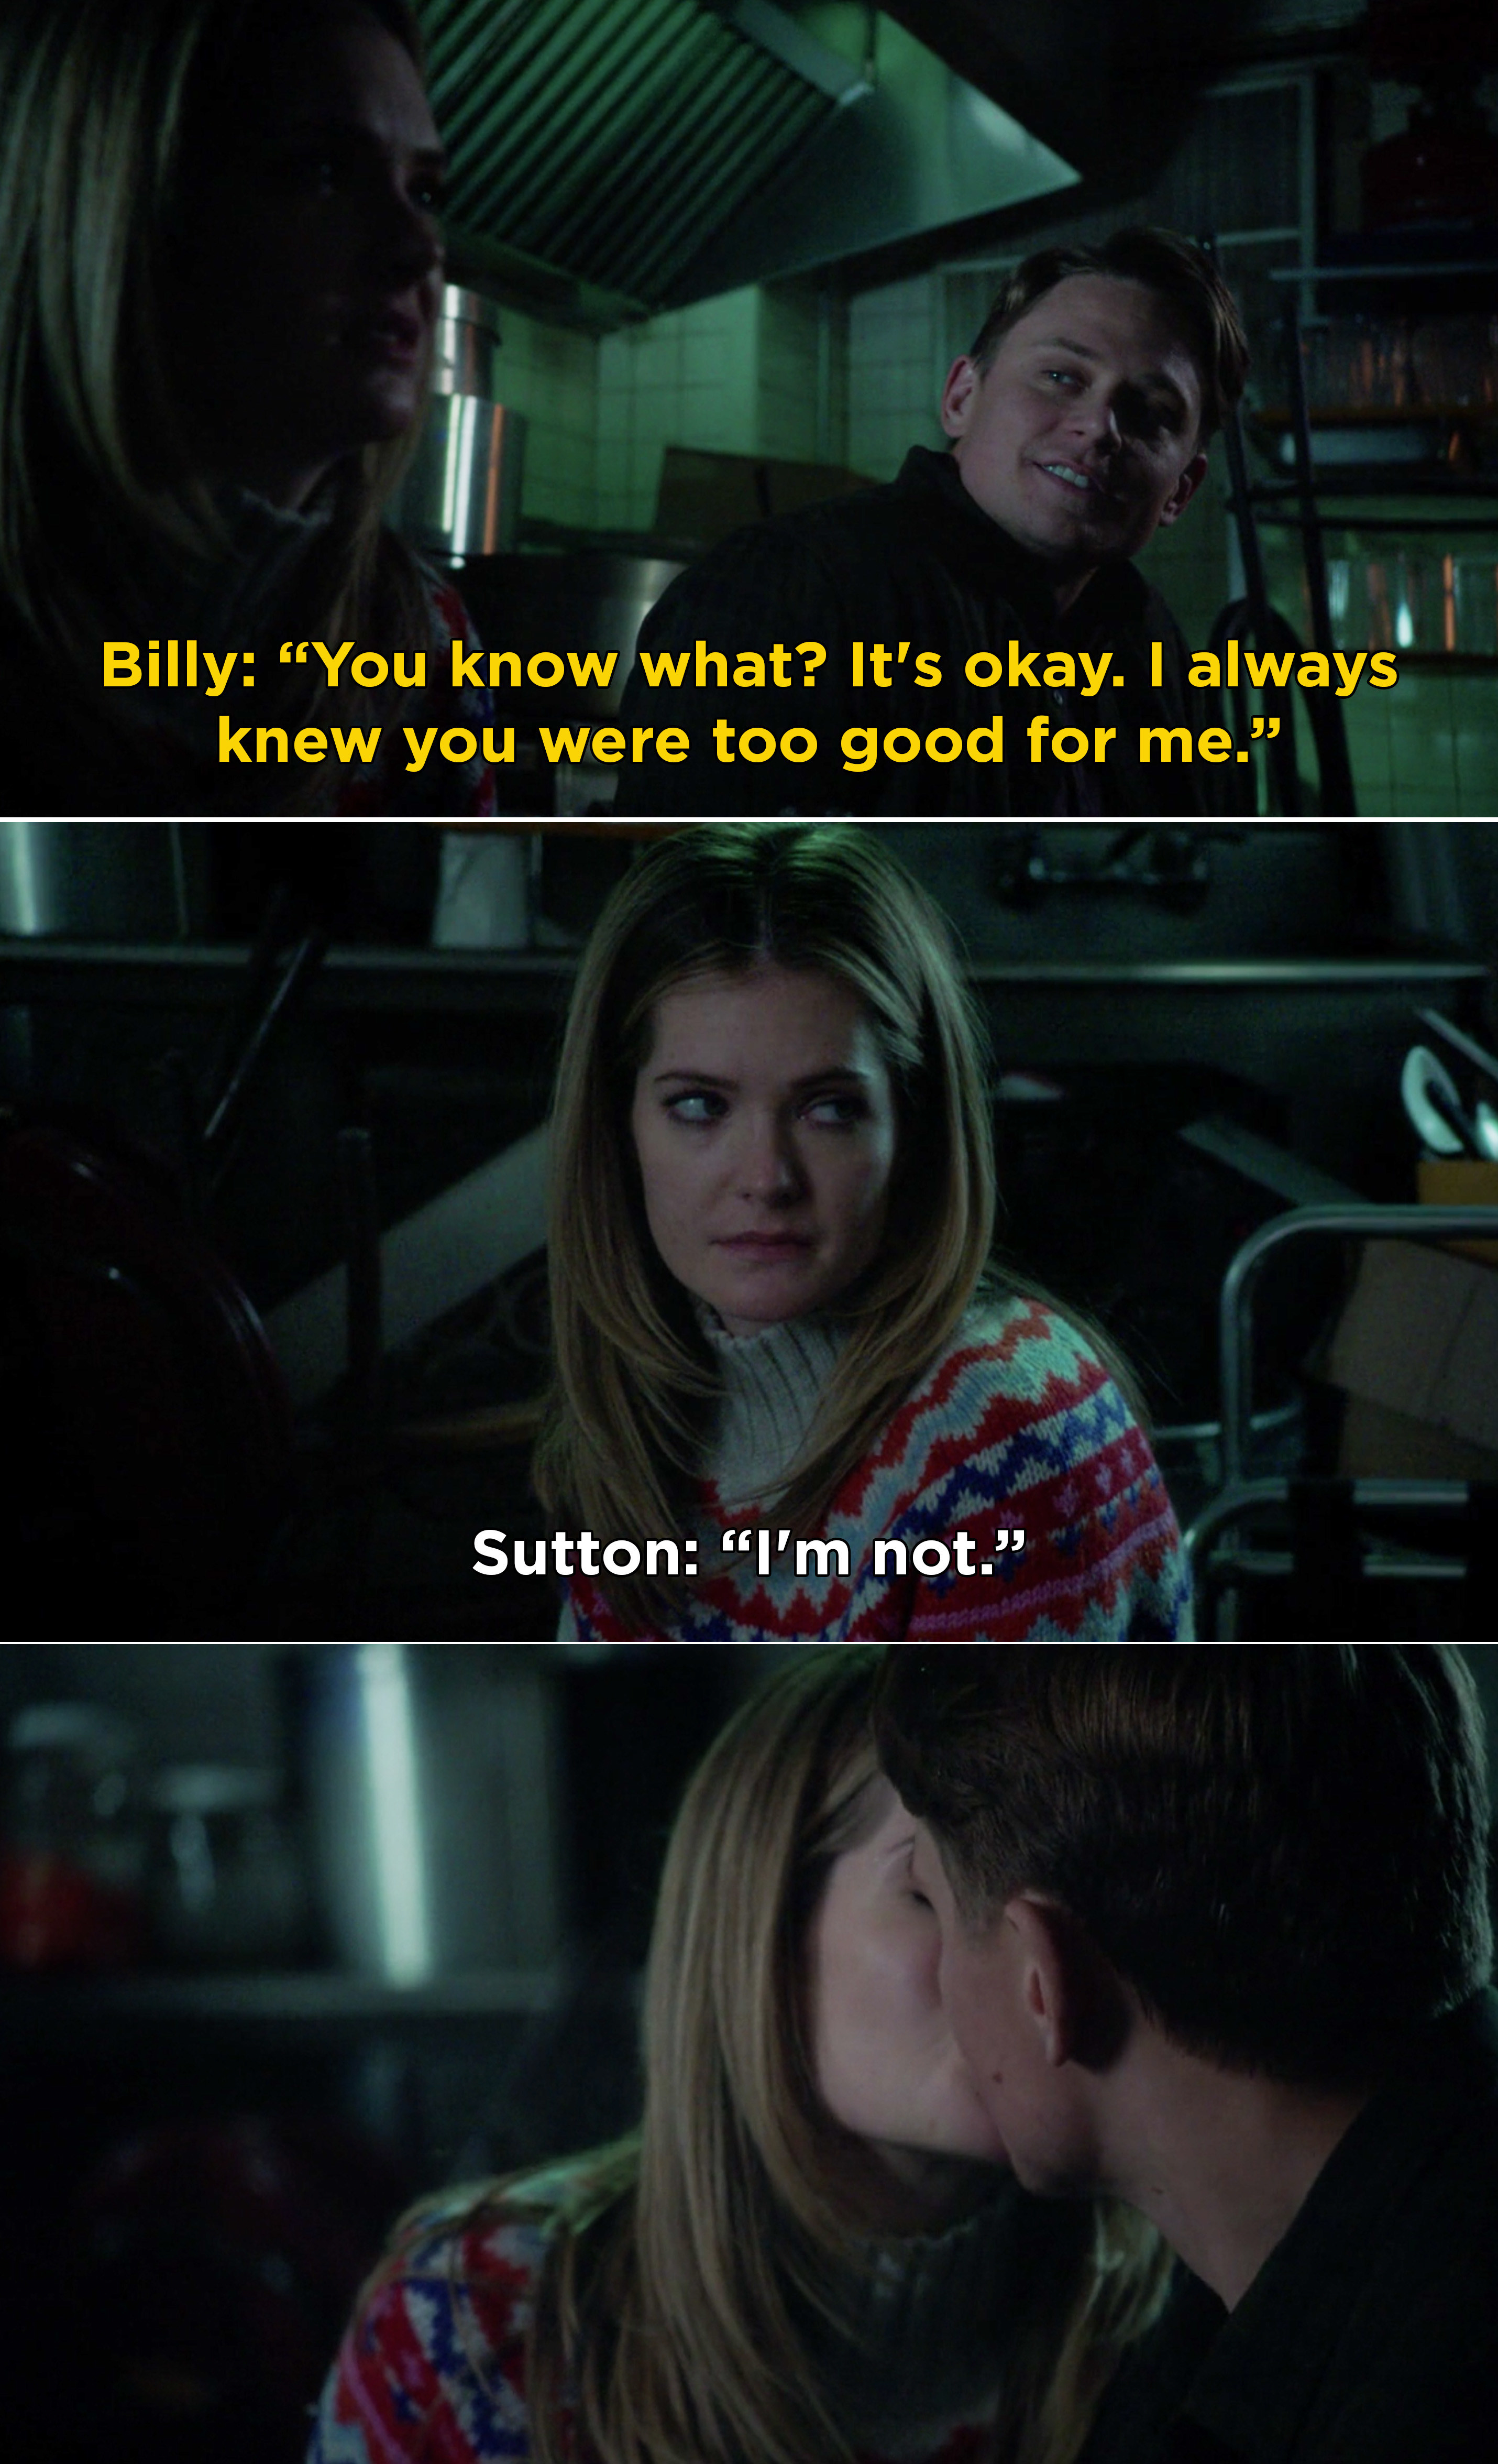 """Billy telling Sutton, """"You know what? It's okay. I always knew you were too good for me."""" Then, Sutton responding, """"I'm not"""" before kissing Billy"""